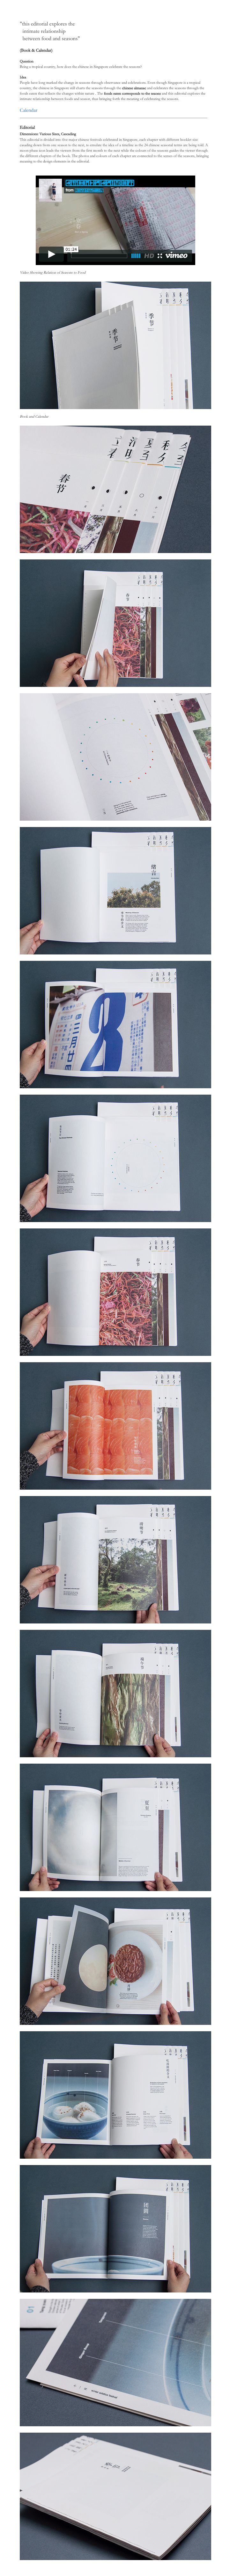 "Seasons In Singapore (Editorial) ""this editorial explores the intimate relationship between food and seasons"" (Book & Calendar)"